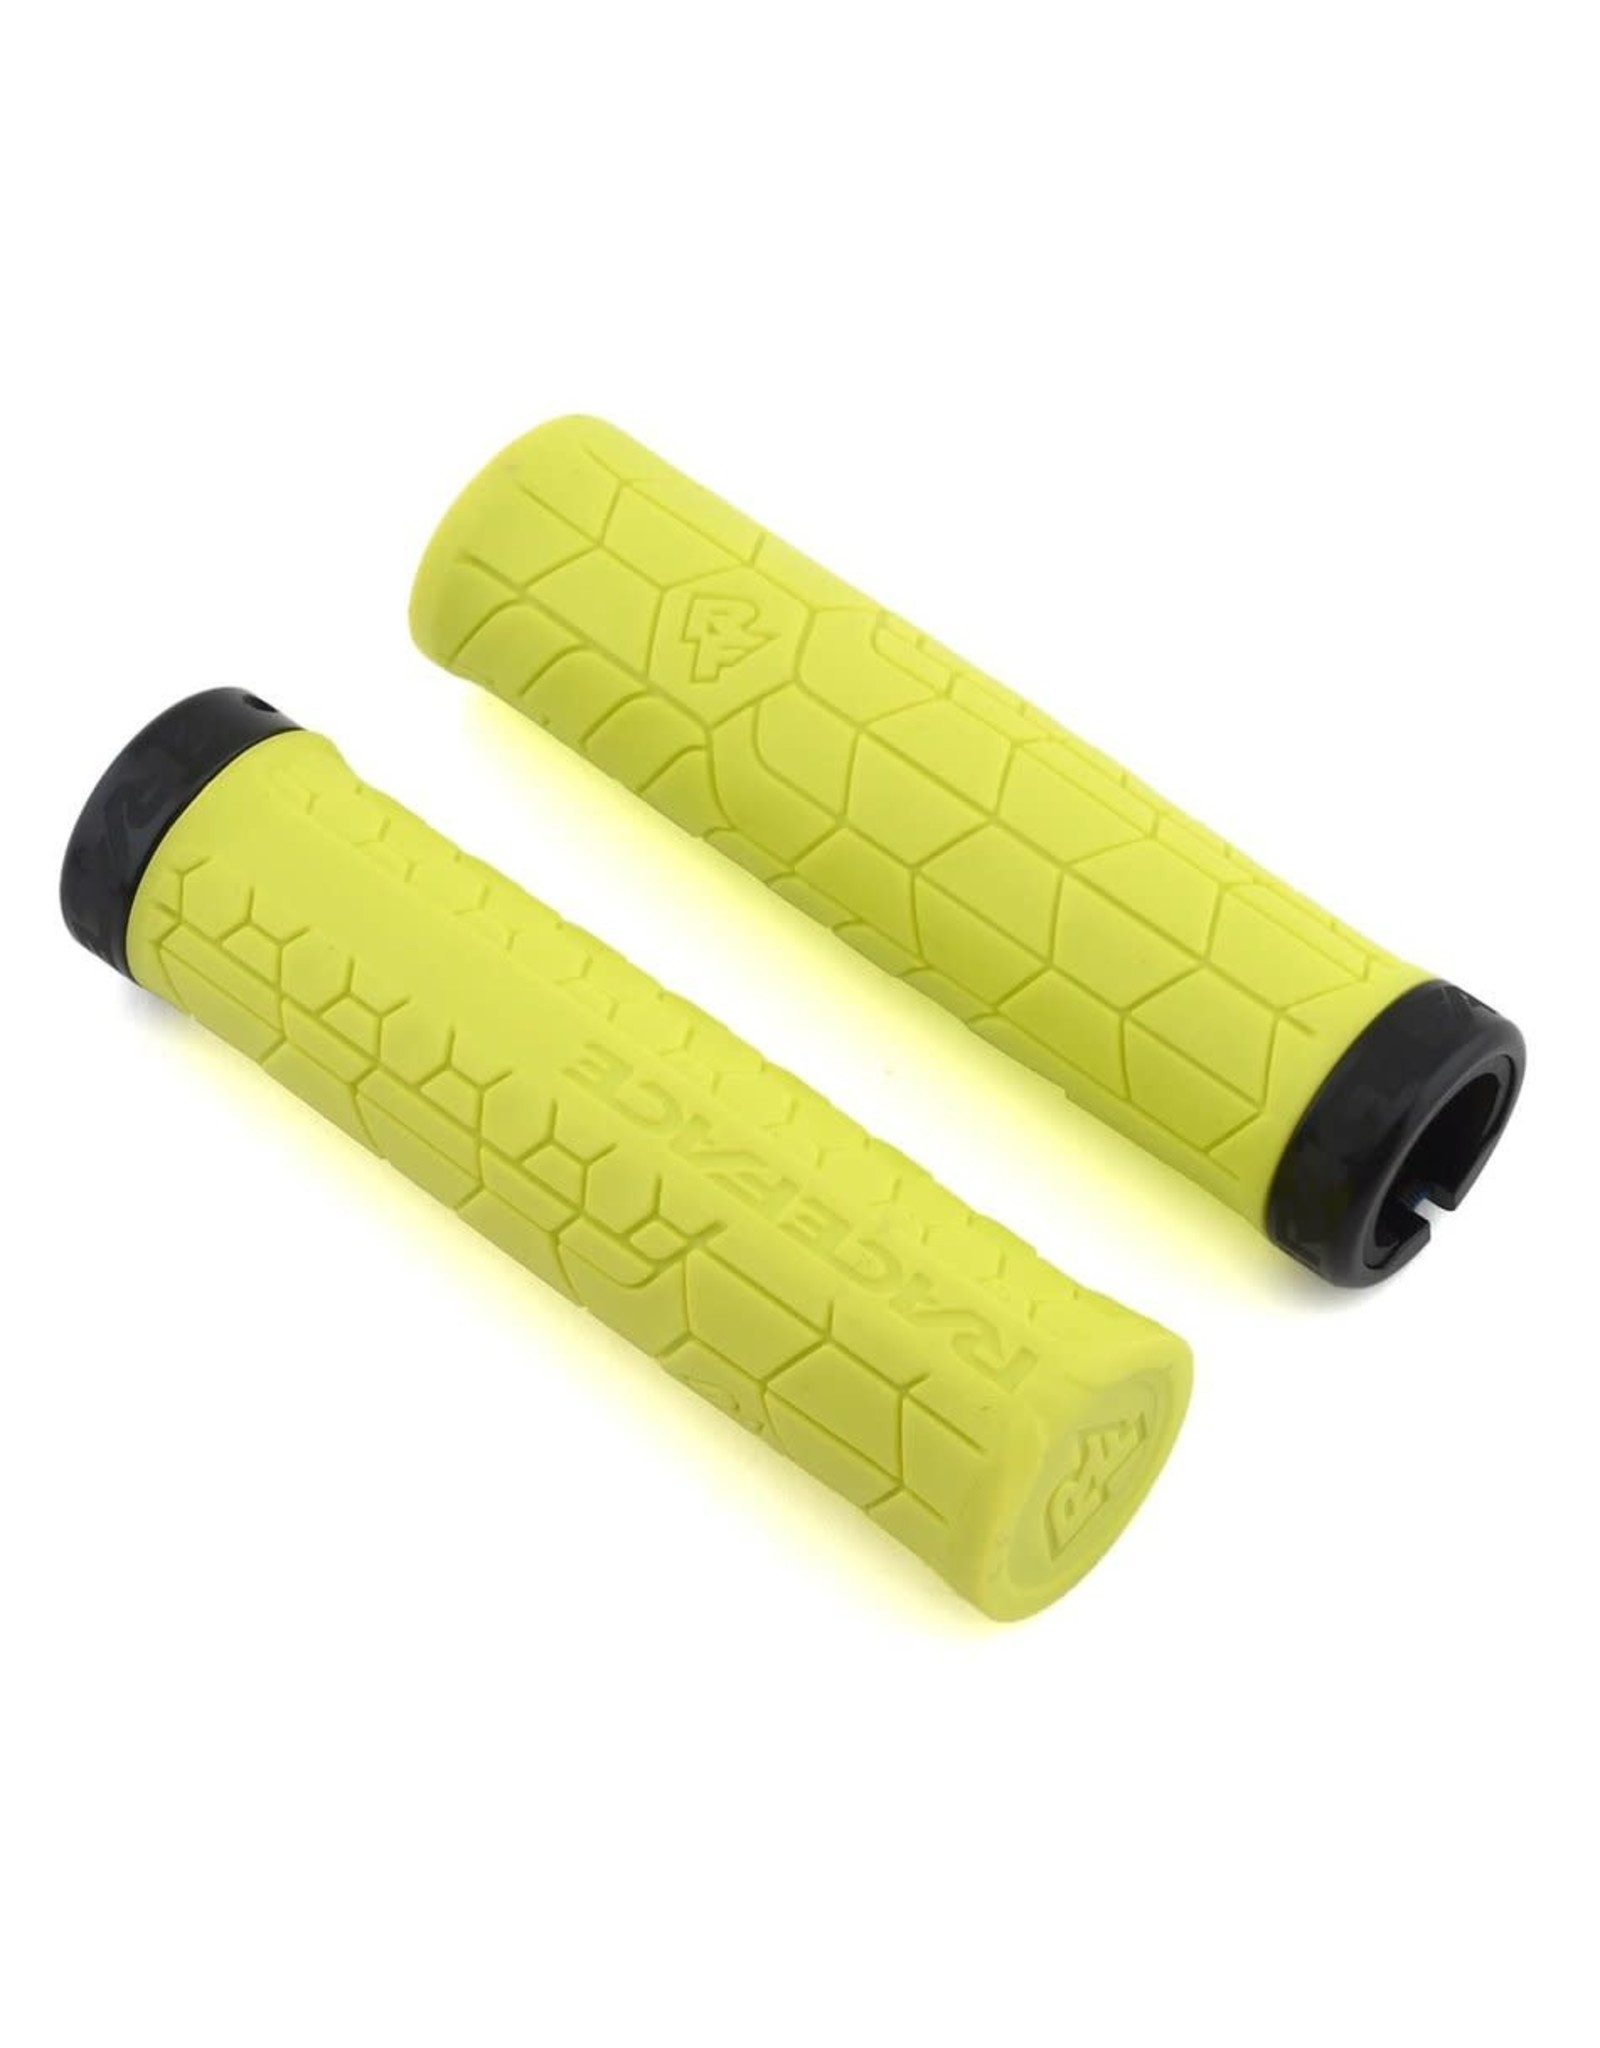 RaceFace RaceFace Getta Grips - Yellow, Lock-On, 33mm